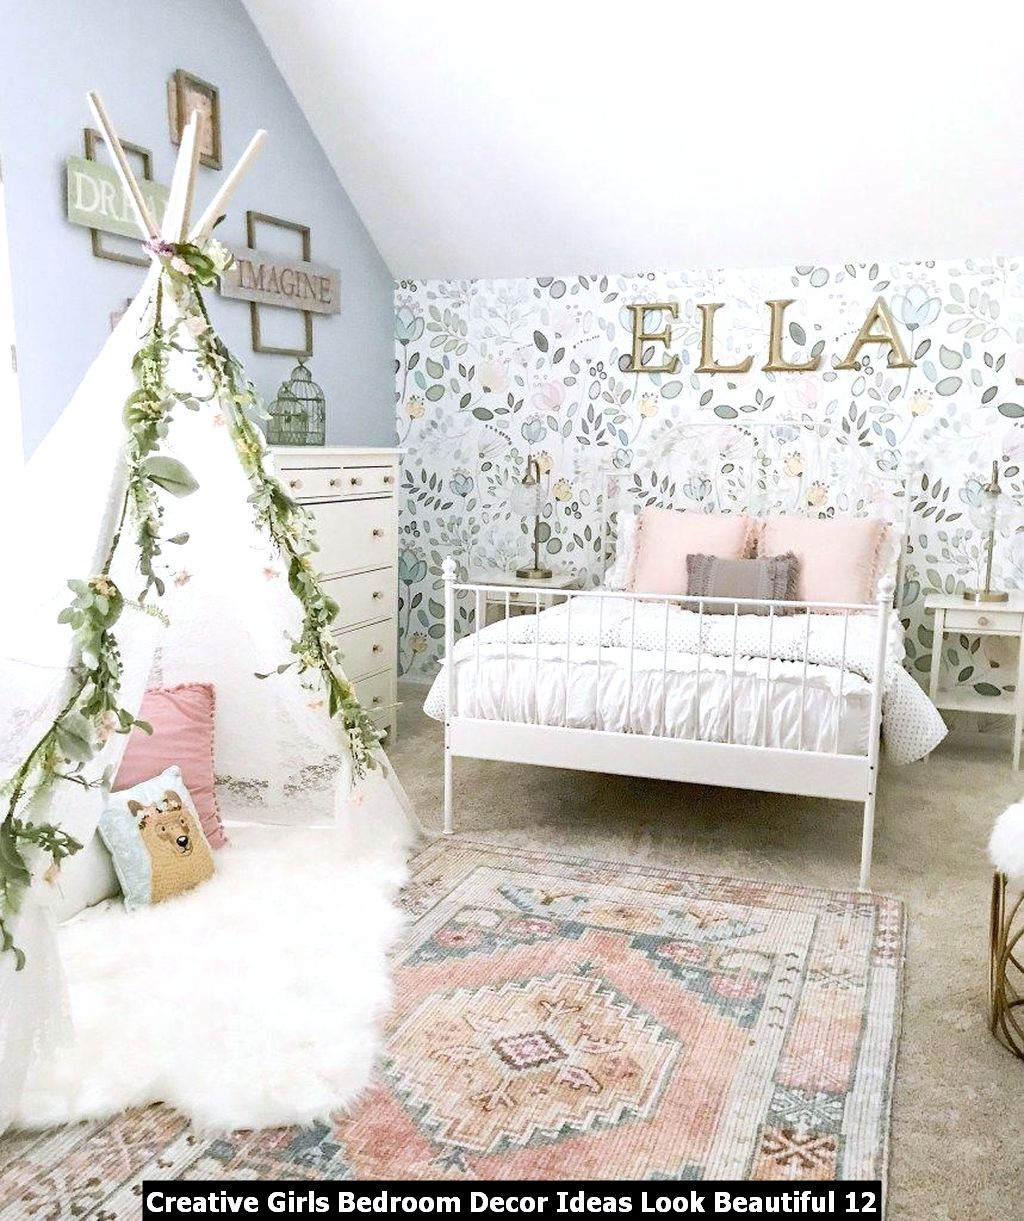 Creative Girls Bedroom Decor Ideas Look Beautiful 12